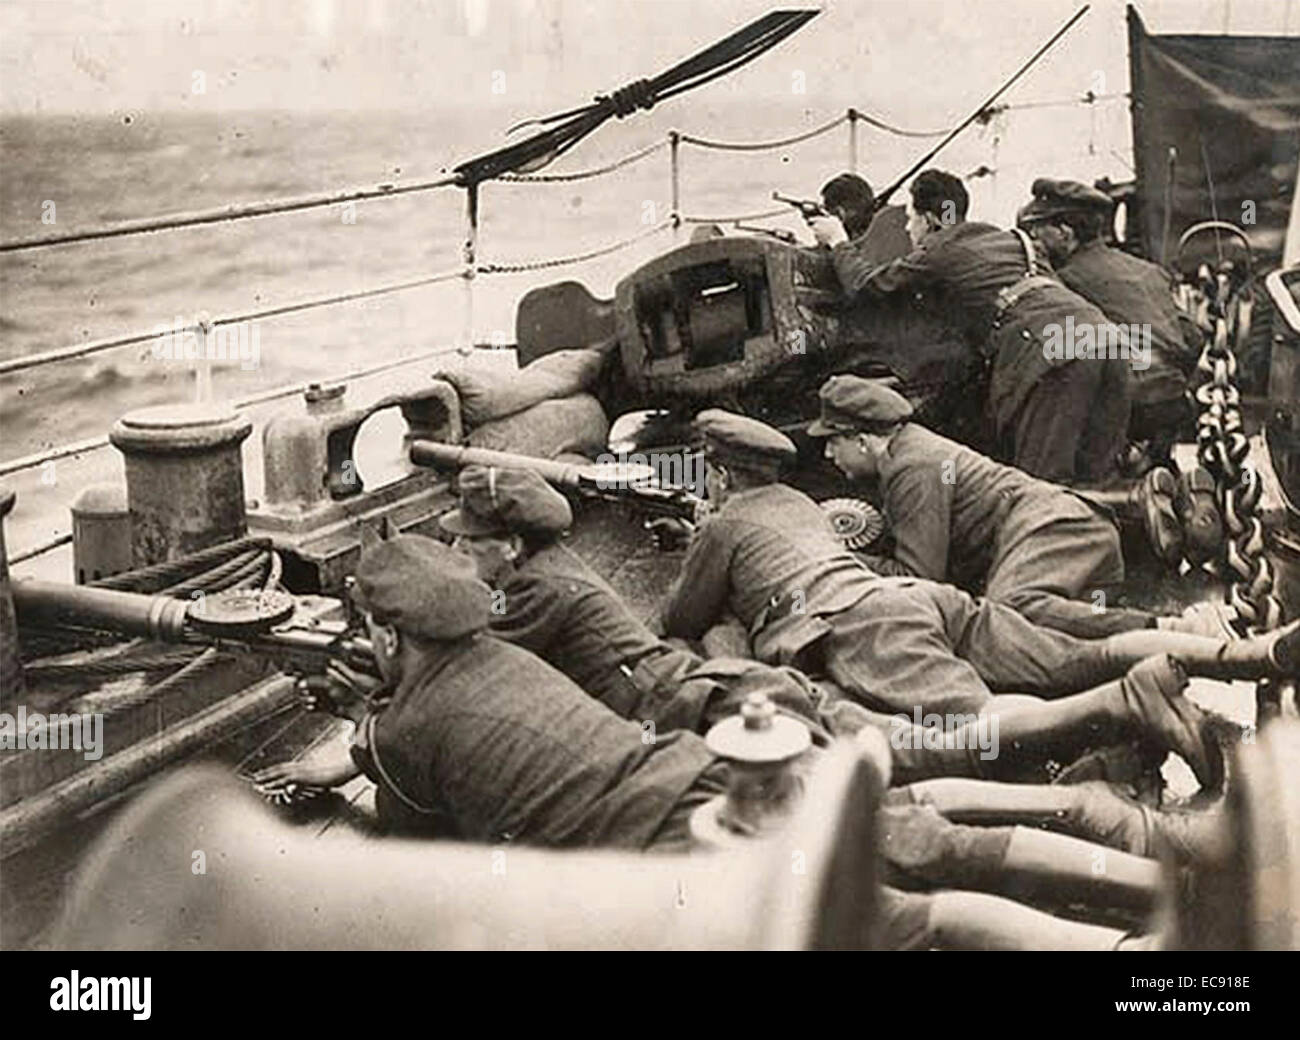 National Army troops on board a ship bound for a secret destination during the Irish Civil War 1922 - Stock Image